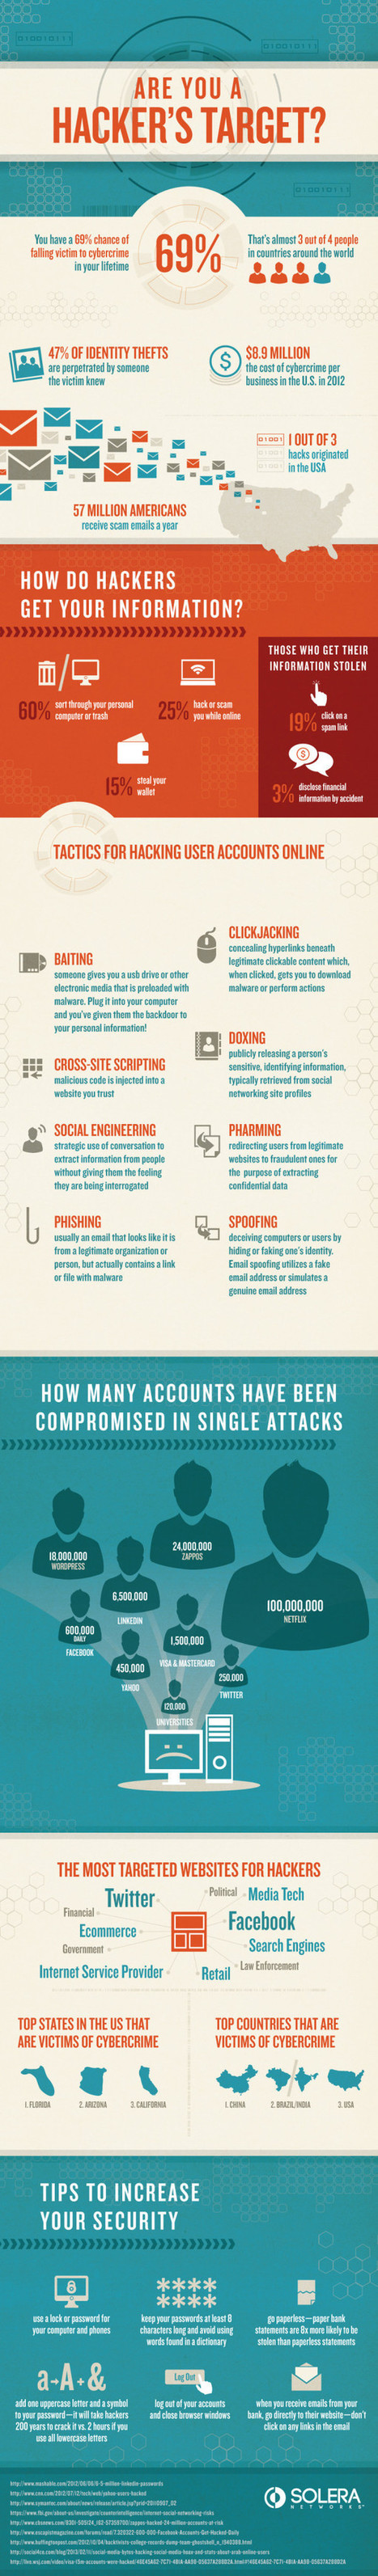 Are you a hacker's target? [infographic] | Resources for DNLE for 21st Century | Scoop.it